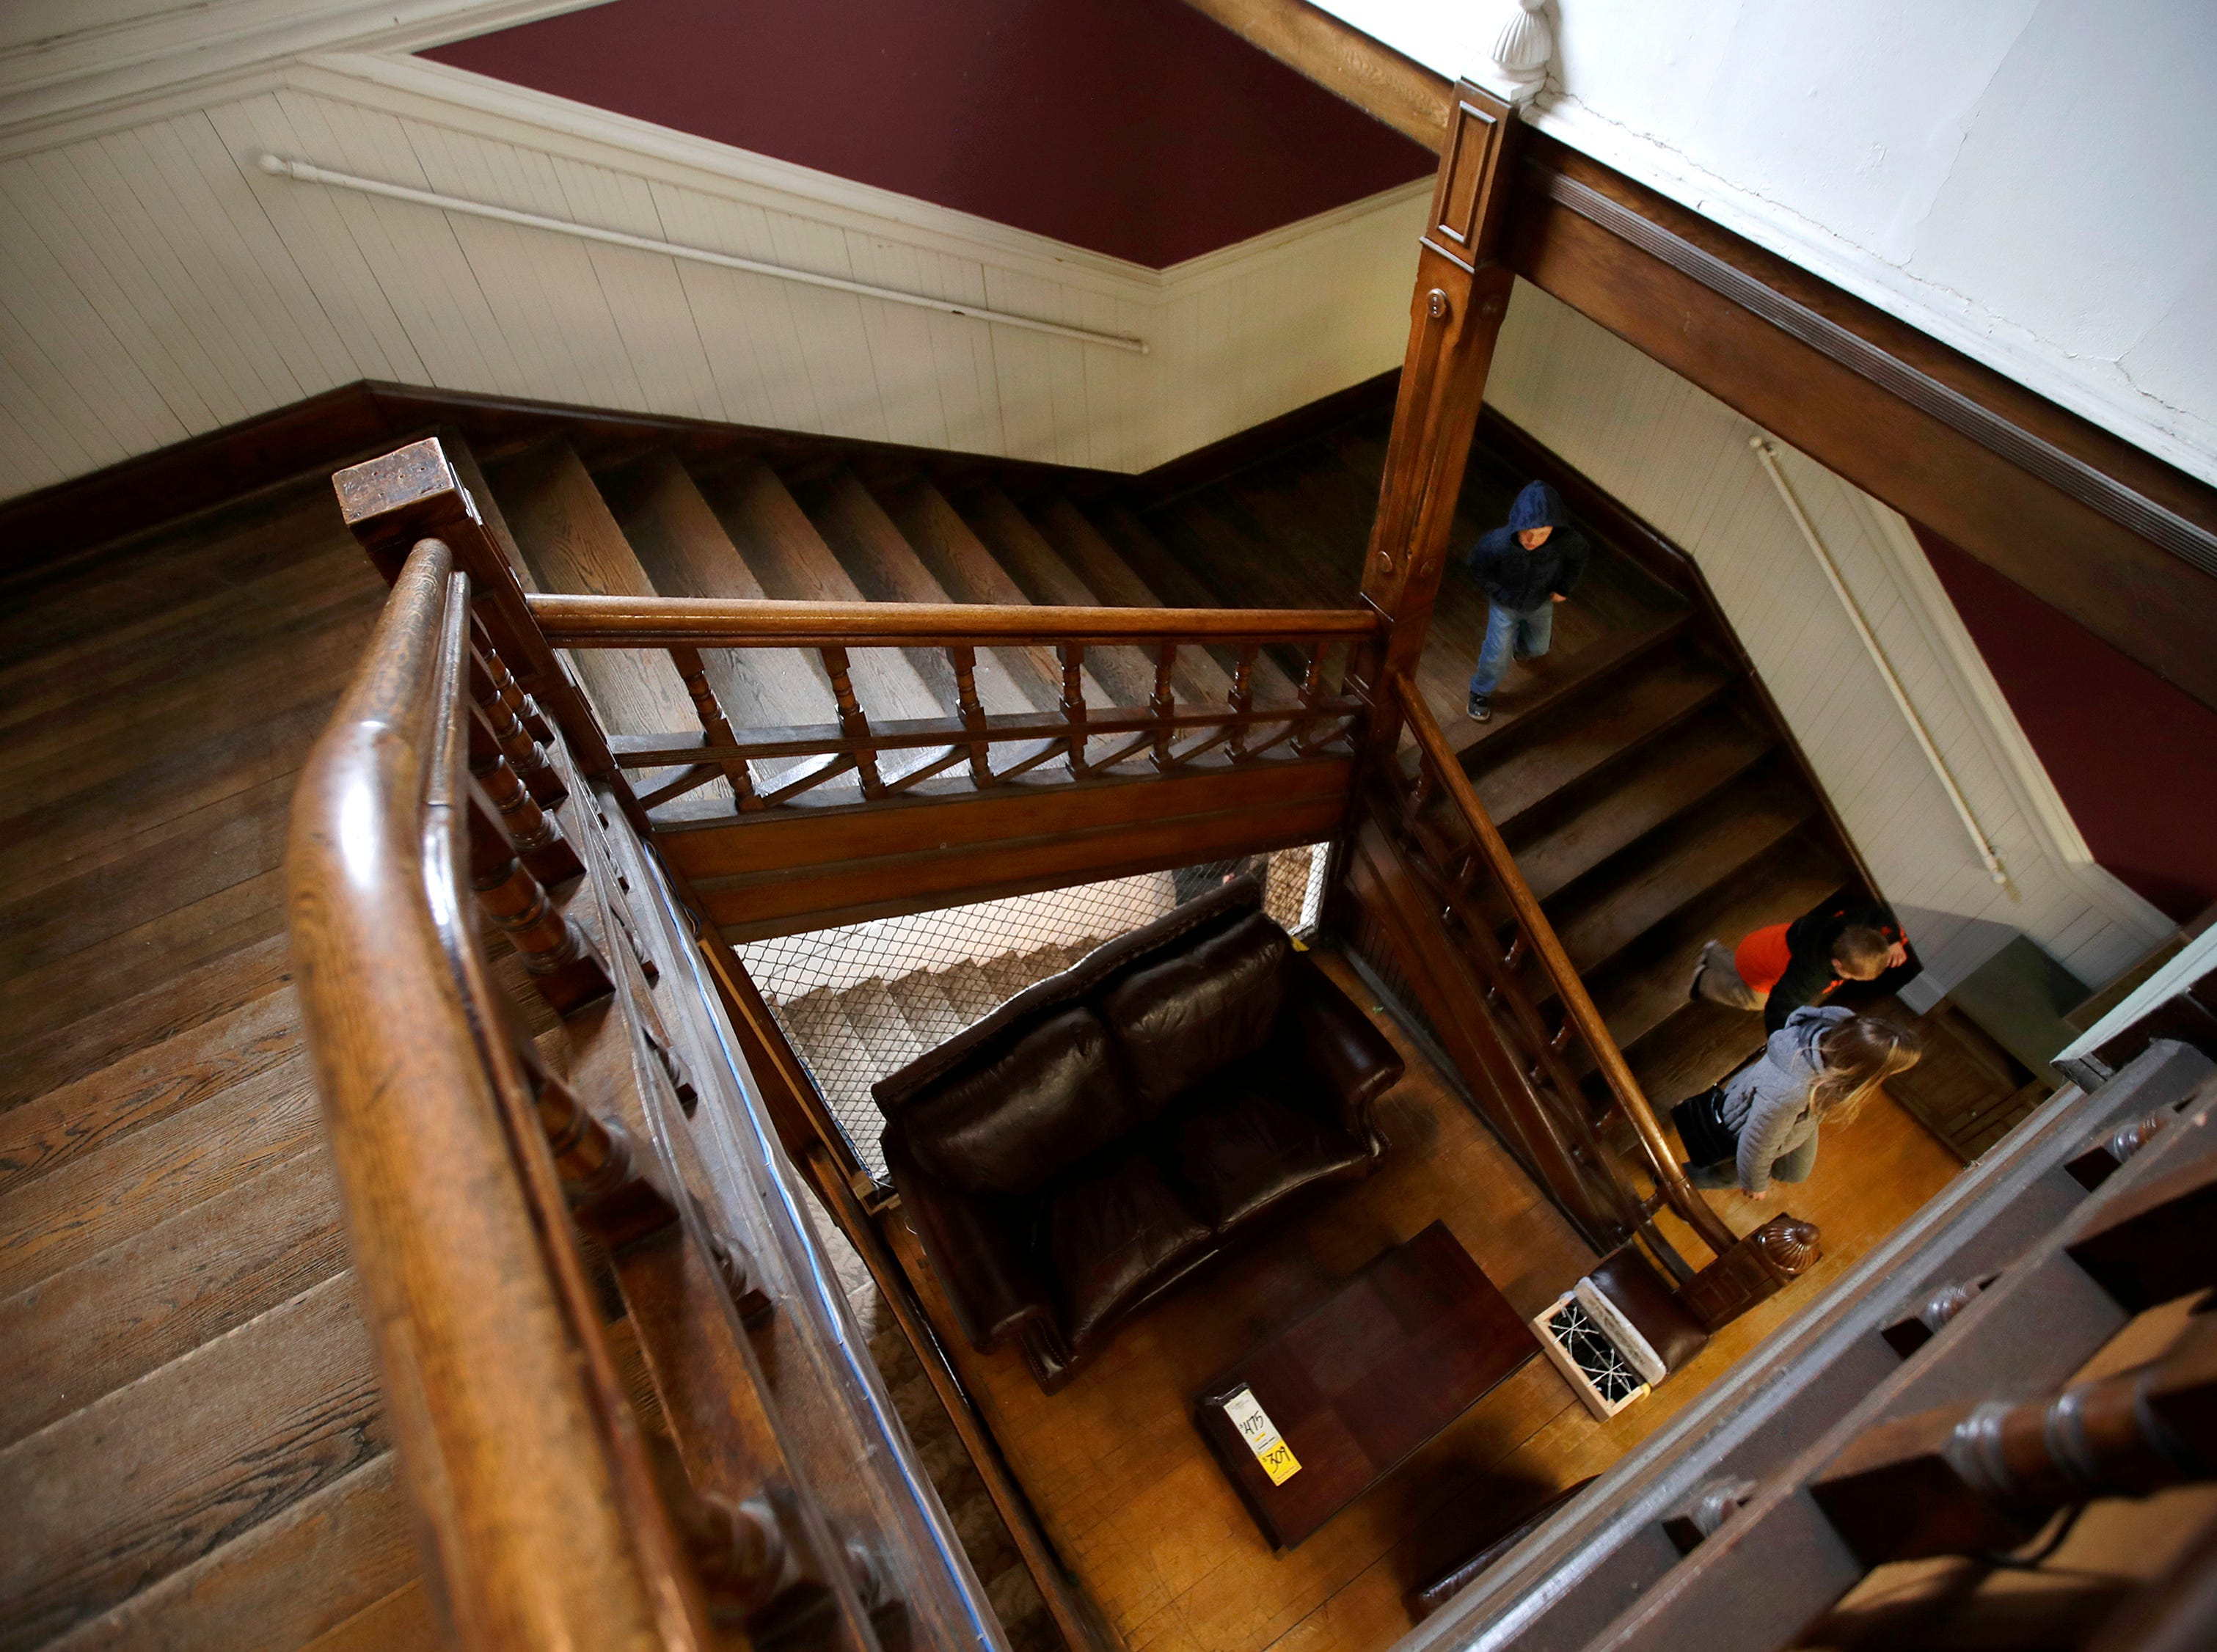 Kayla Hendricks, of Appleton, walks down the grand staircase in Gabriel Furniture with her sons Charlie, 5, and Bennett, 3, while looking around the building Thursday, April 18, 2019, in Appleton, Wis. Hendricks used to visit the building, which was built in 1888, as a child. The staircase is original to the building.Danny Damiani/USA TODAY NETWORK-Wisconsin